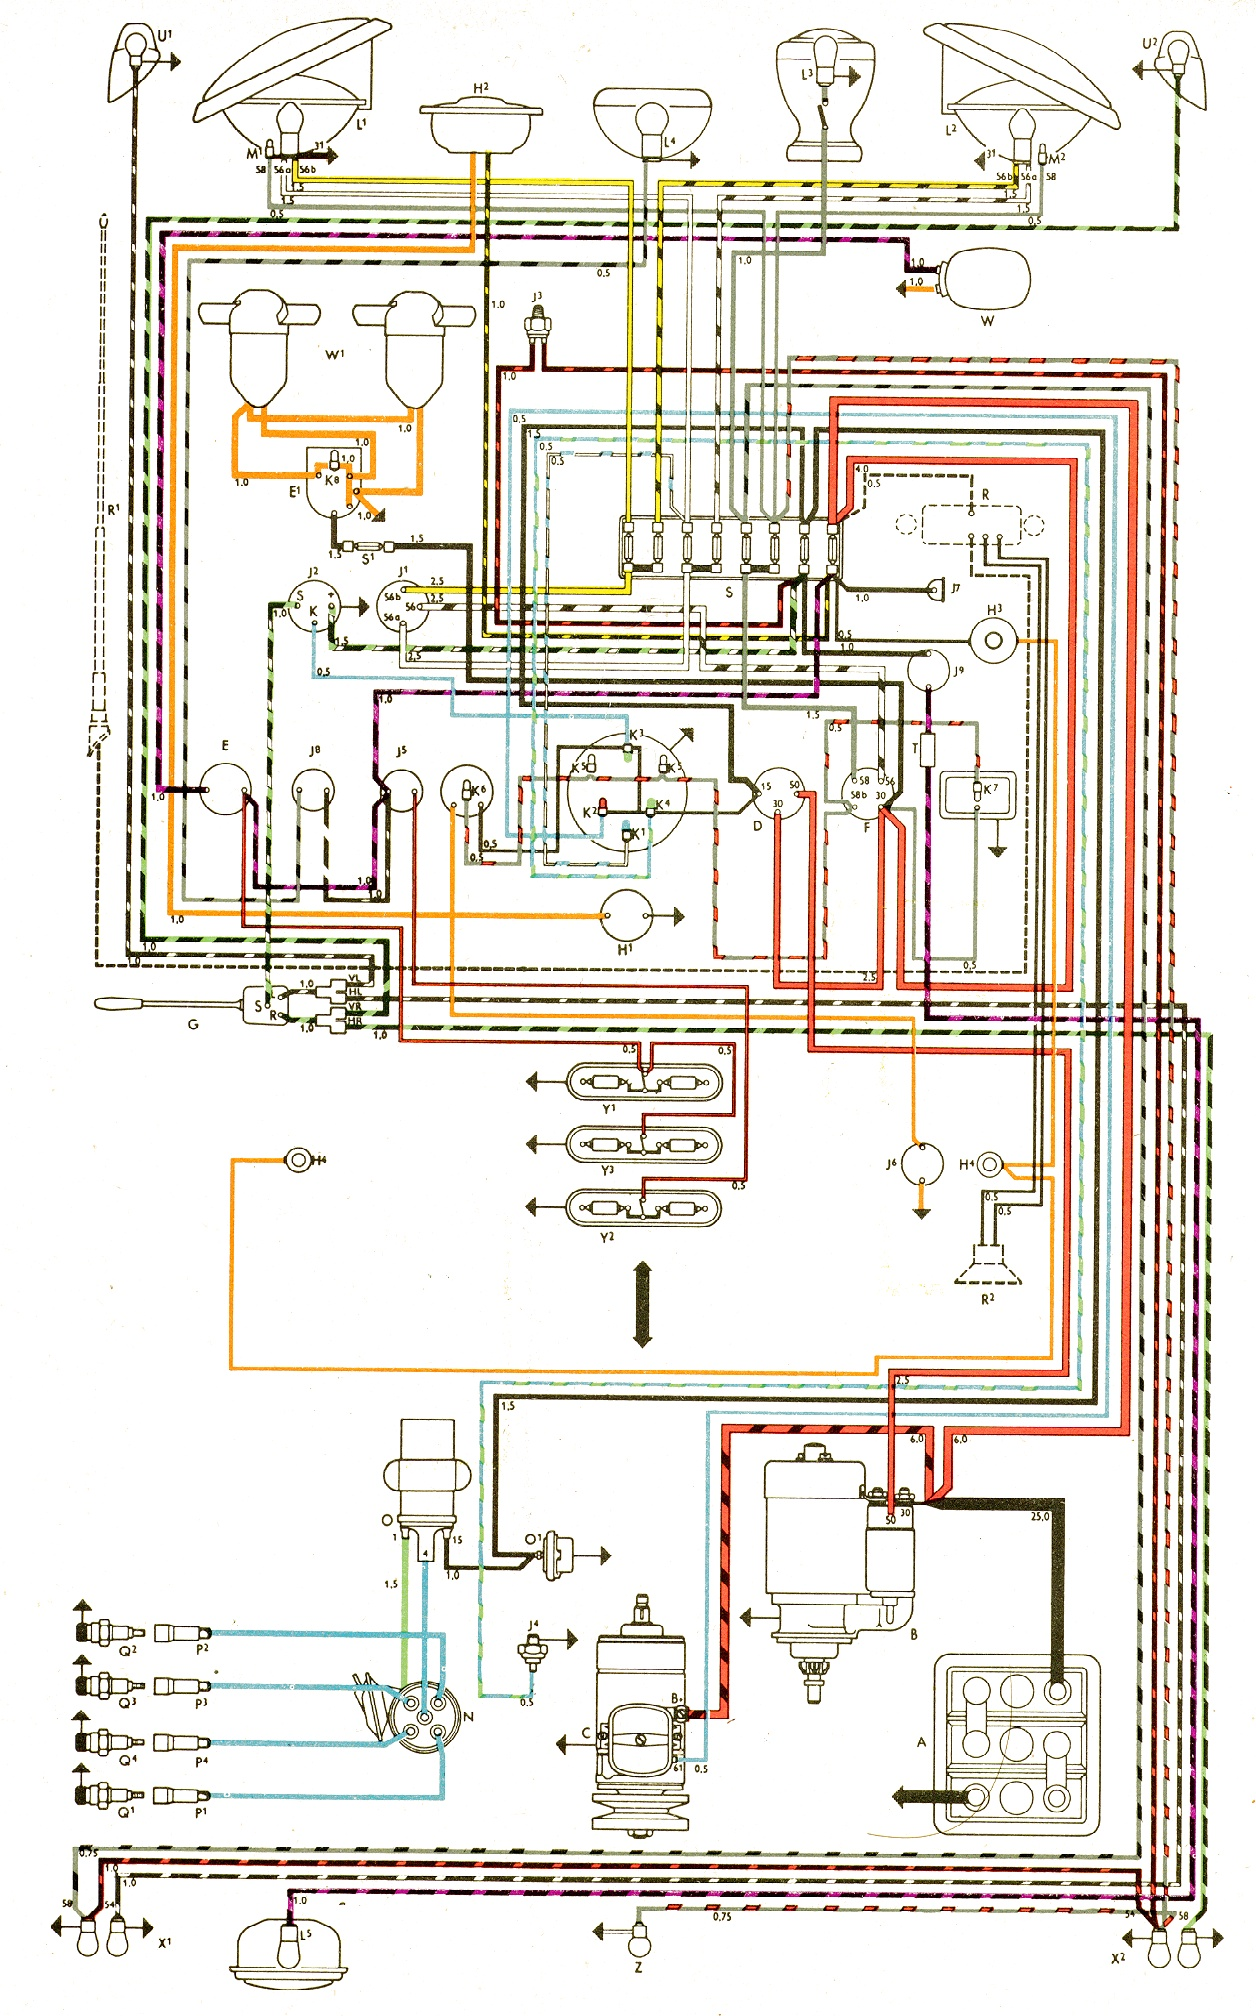 76 Trailer Wiring Diagram Detailed Schematics 7 Pin And Socket Vw Bus Way